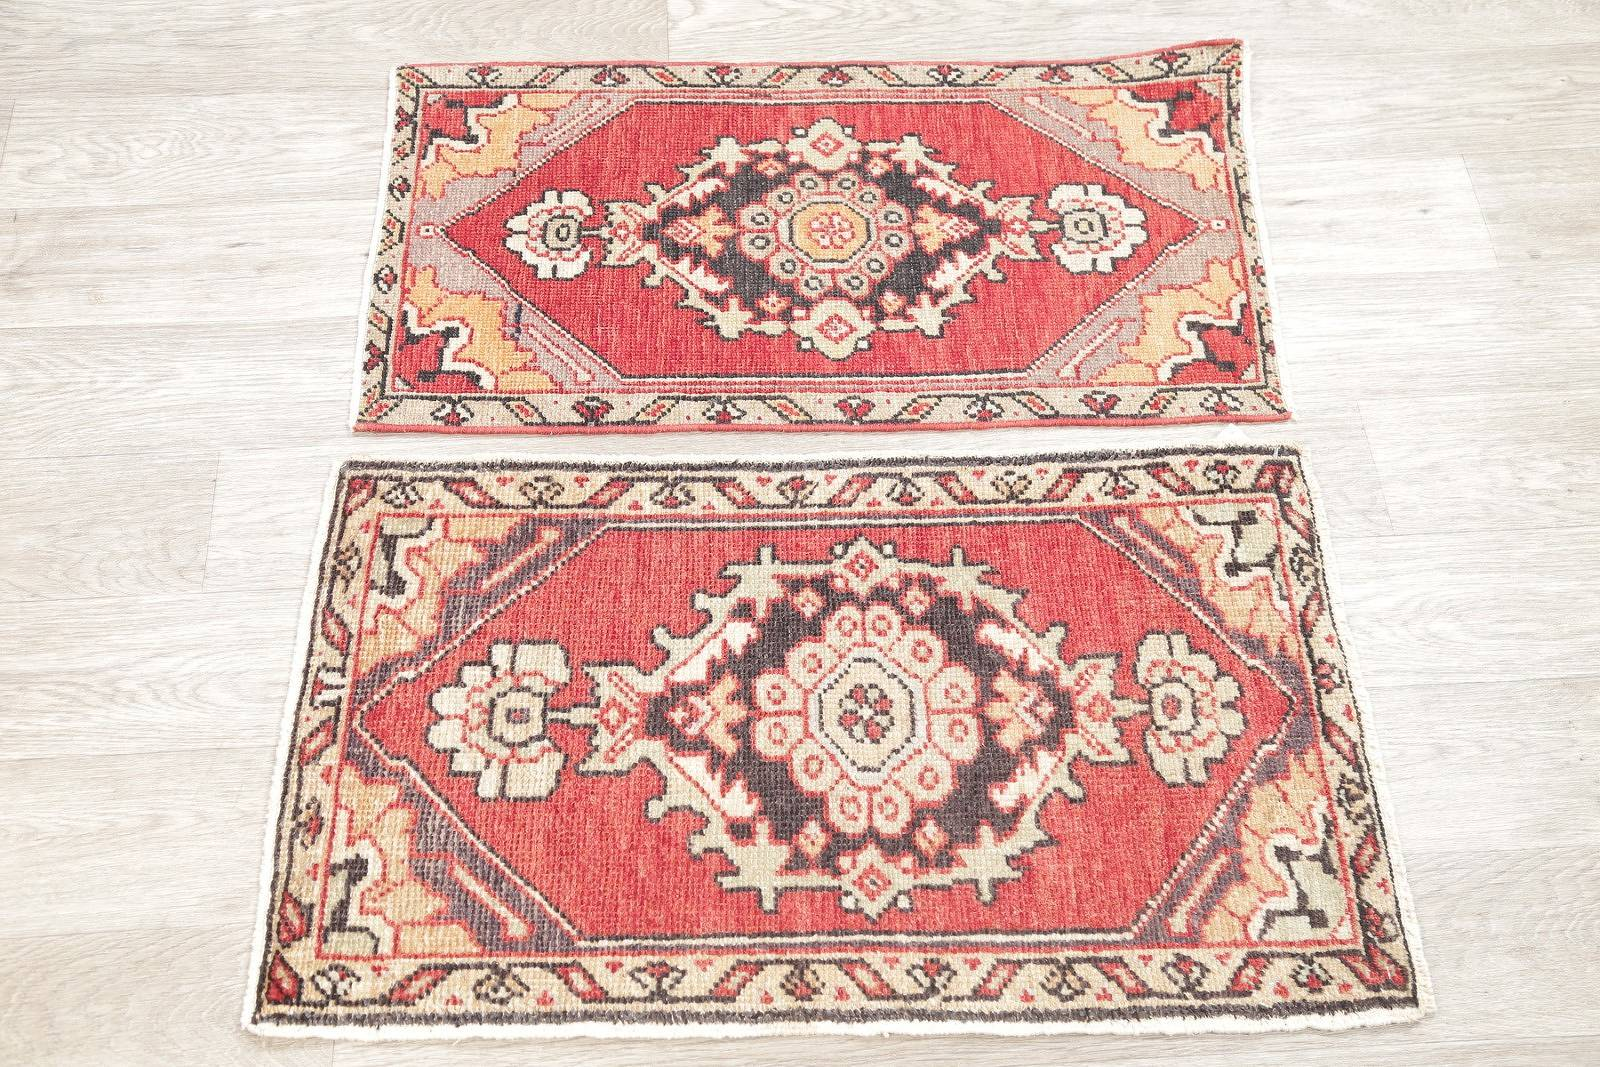 Pack Of Two Antique Anatolian Turkish Hand-Knotted Rug Wool 2x3